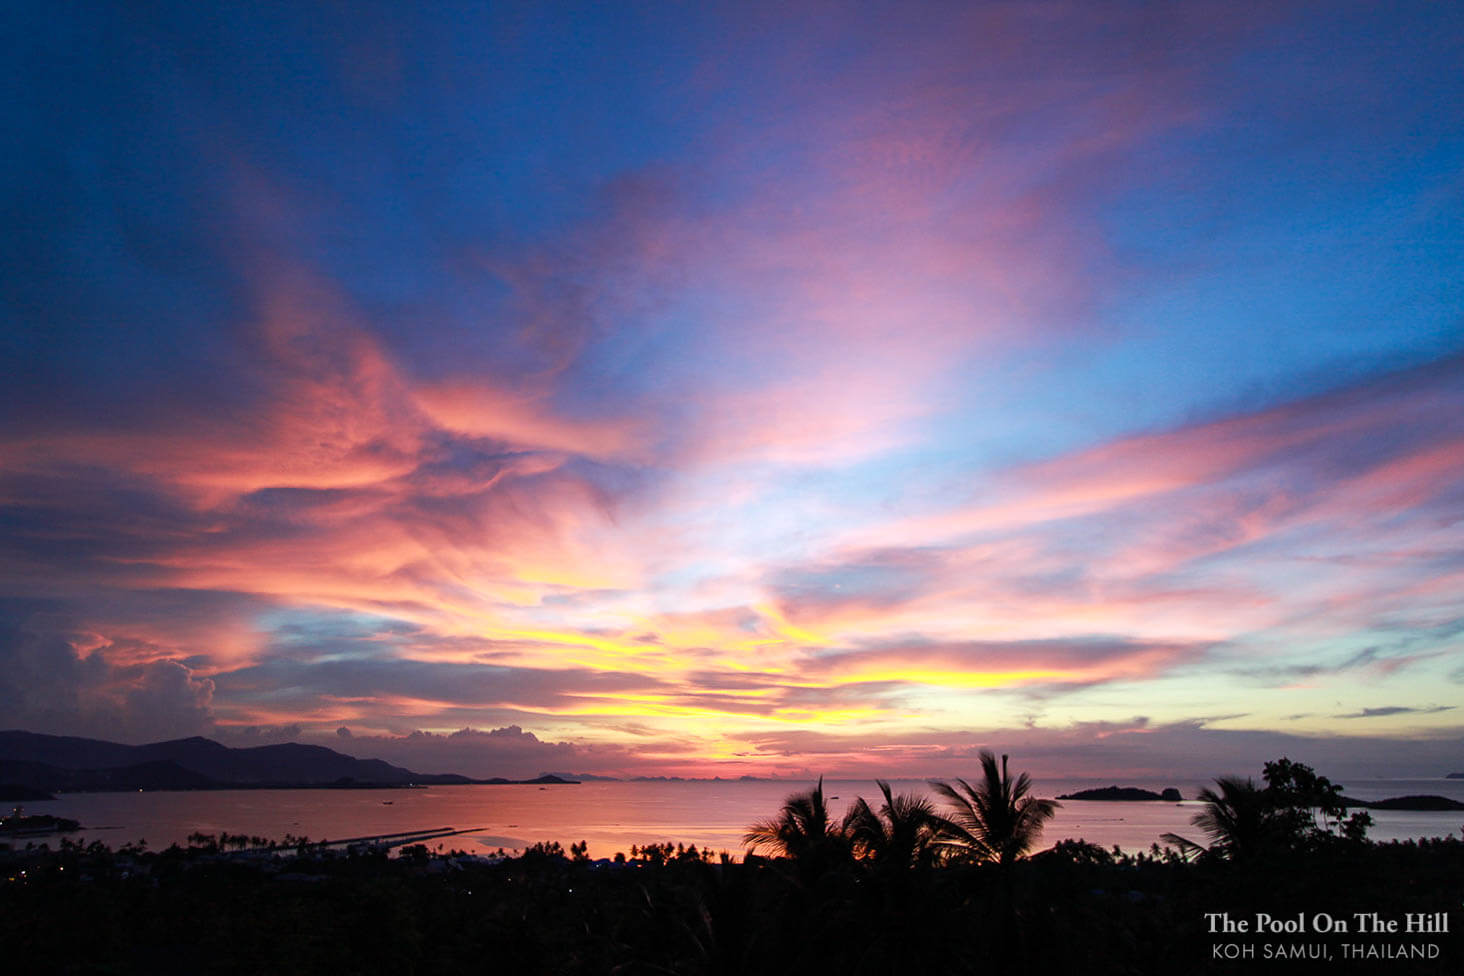 How to rent a villa in Thailand? Make sure that the sunset views in villa photos are definitely sunsets (not sunrises!).